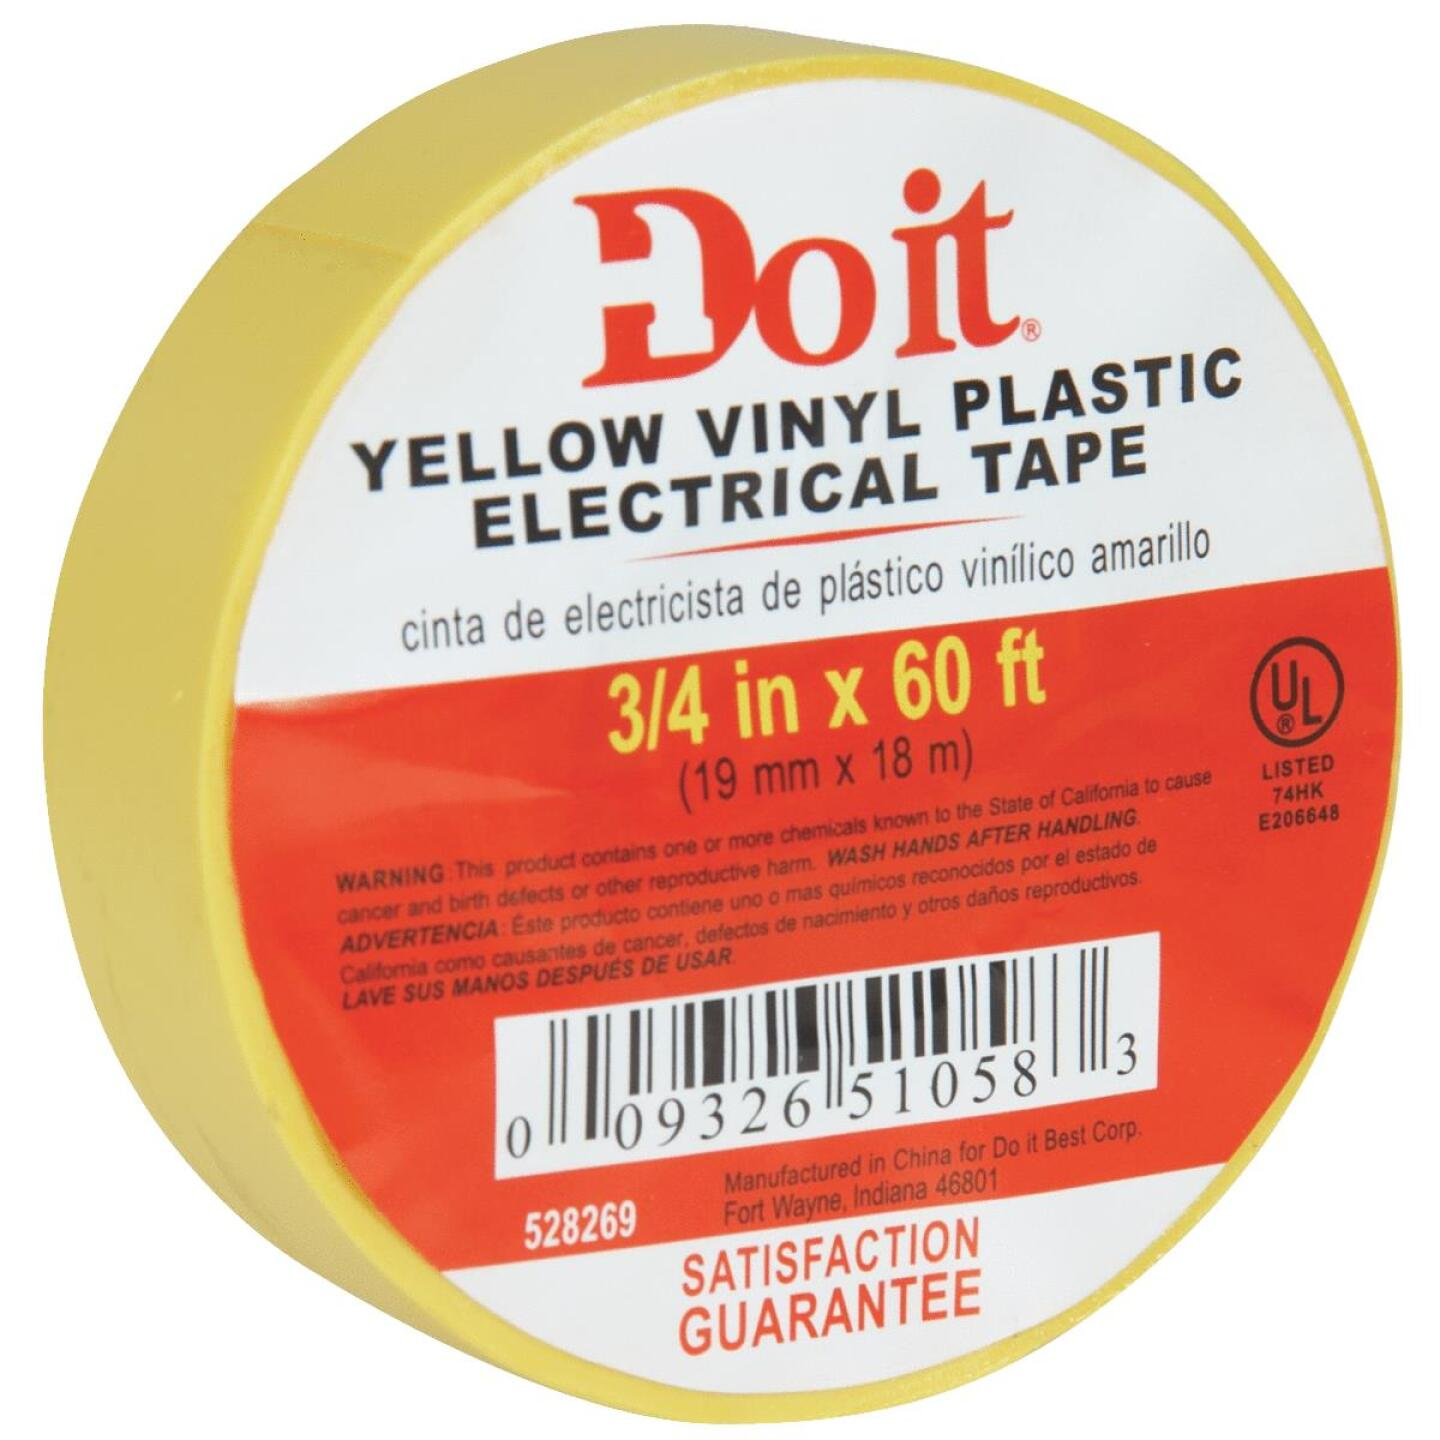 Do it General Purpose 3/4 In. x 60 Ft. Yello Electrical Tape Image 3